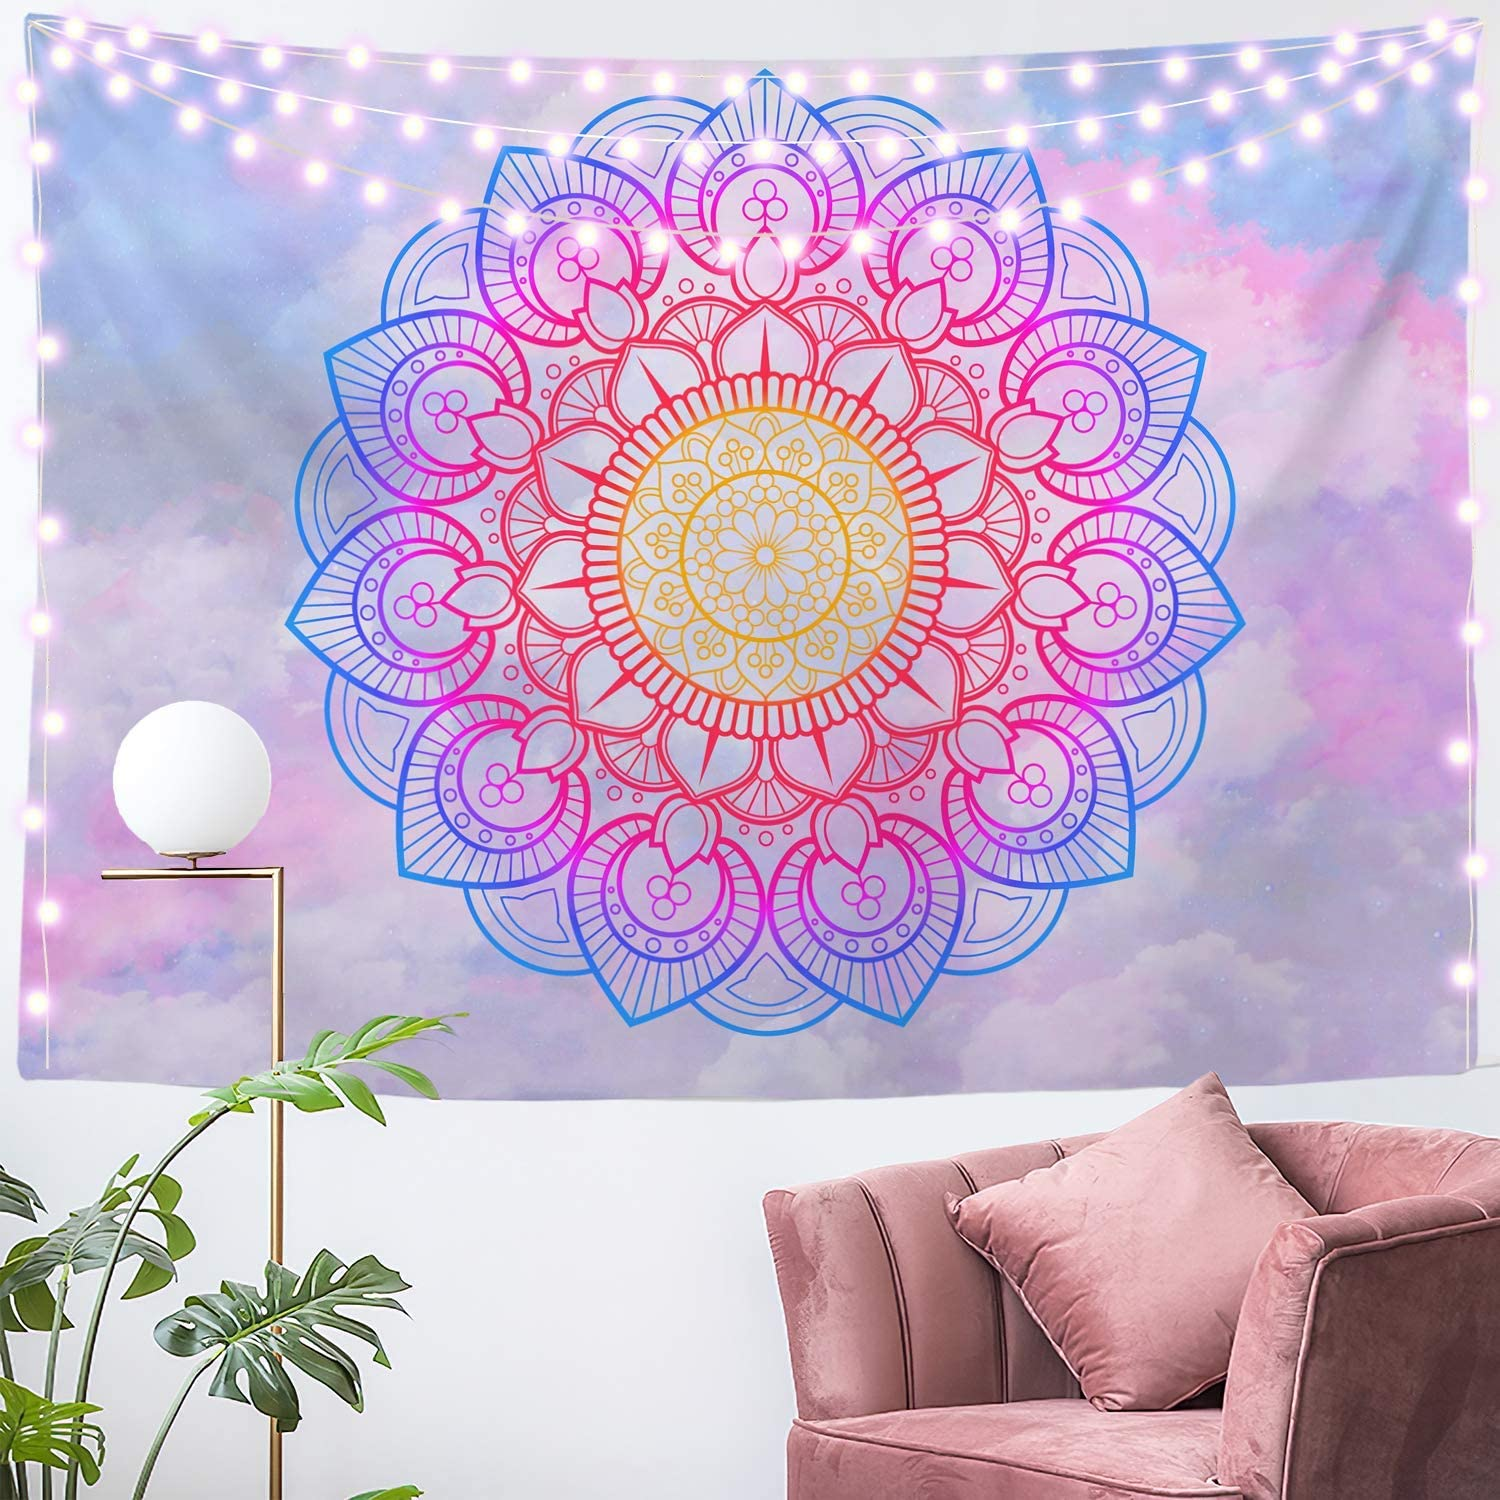 Tapestry Mandala Girls Pink and Blue Wall Hanging Bright Vsco Decor for Teens Bedroom, Living Room and Dorm 59x59 Inches